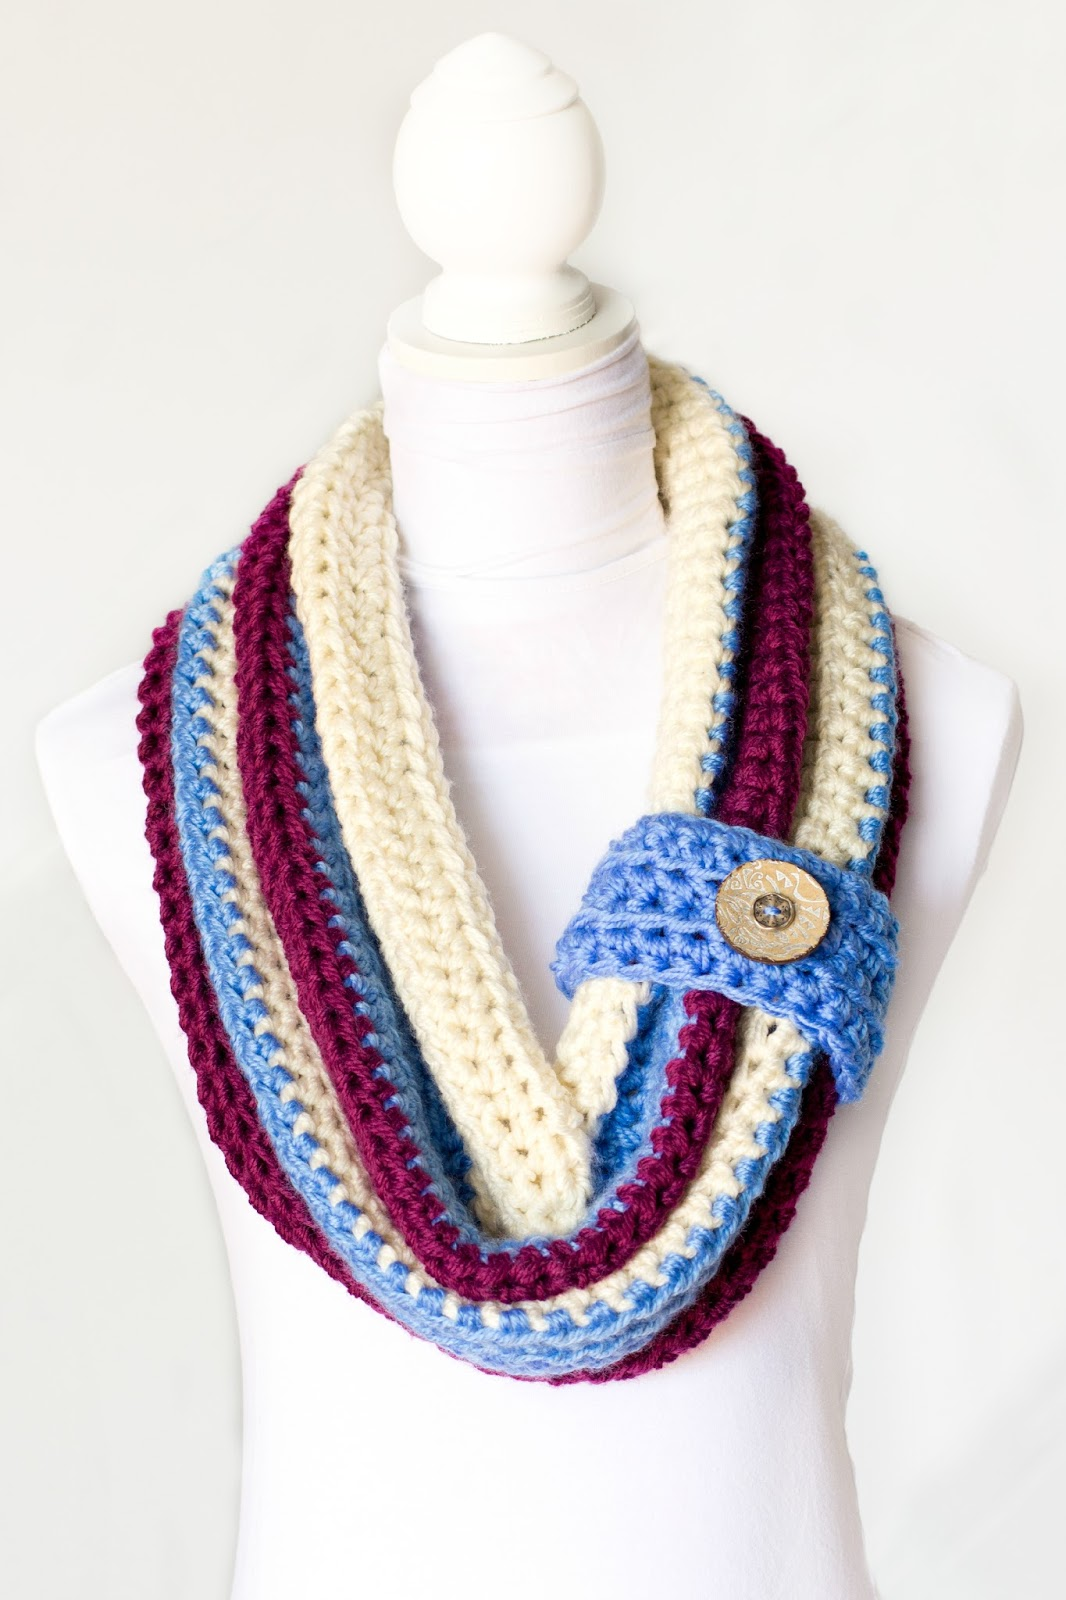 Free Crochet Pattern For Chunky Scarf : Hopeful Honey Craft, Crochet, Create: Chunky Button Cowl ...